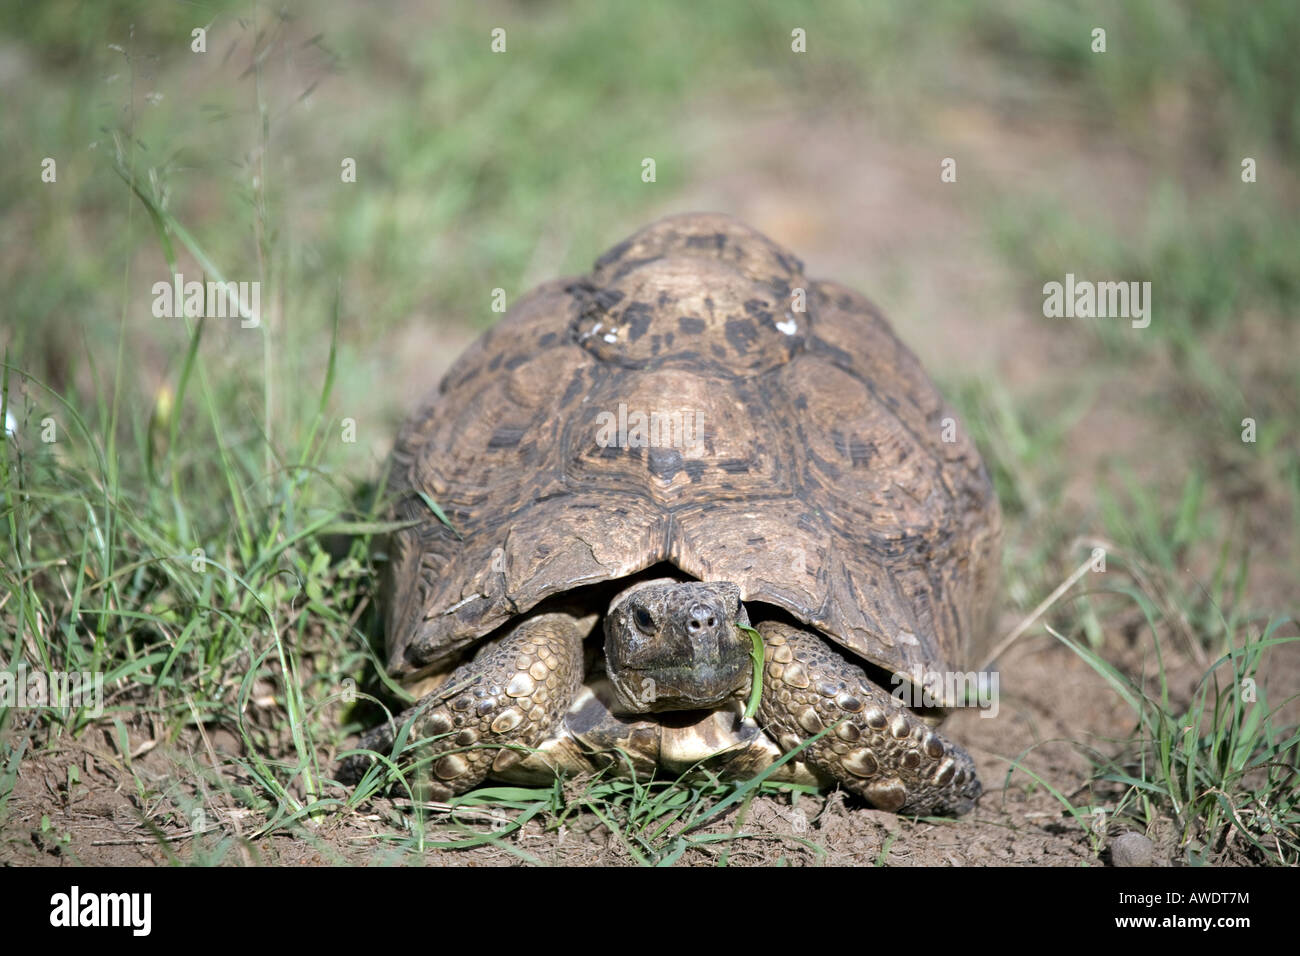 Leopard Tortoise (Stigmochelys pardalis) formerly classed as (geochelone pardalis) - Stock Image